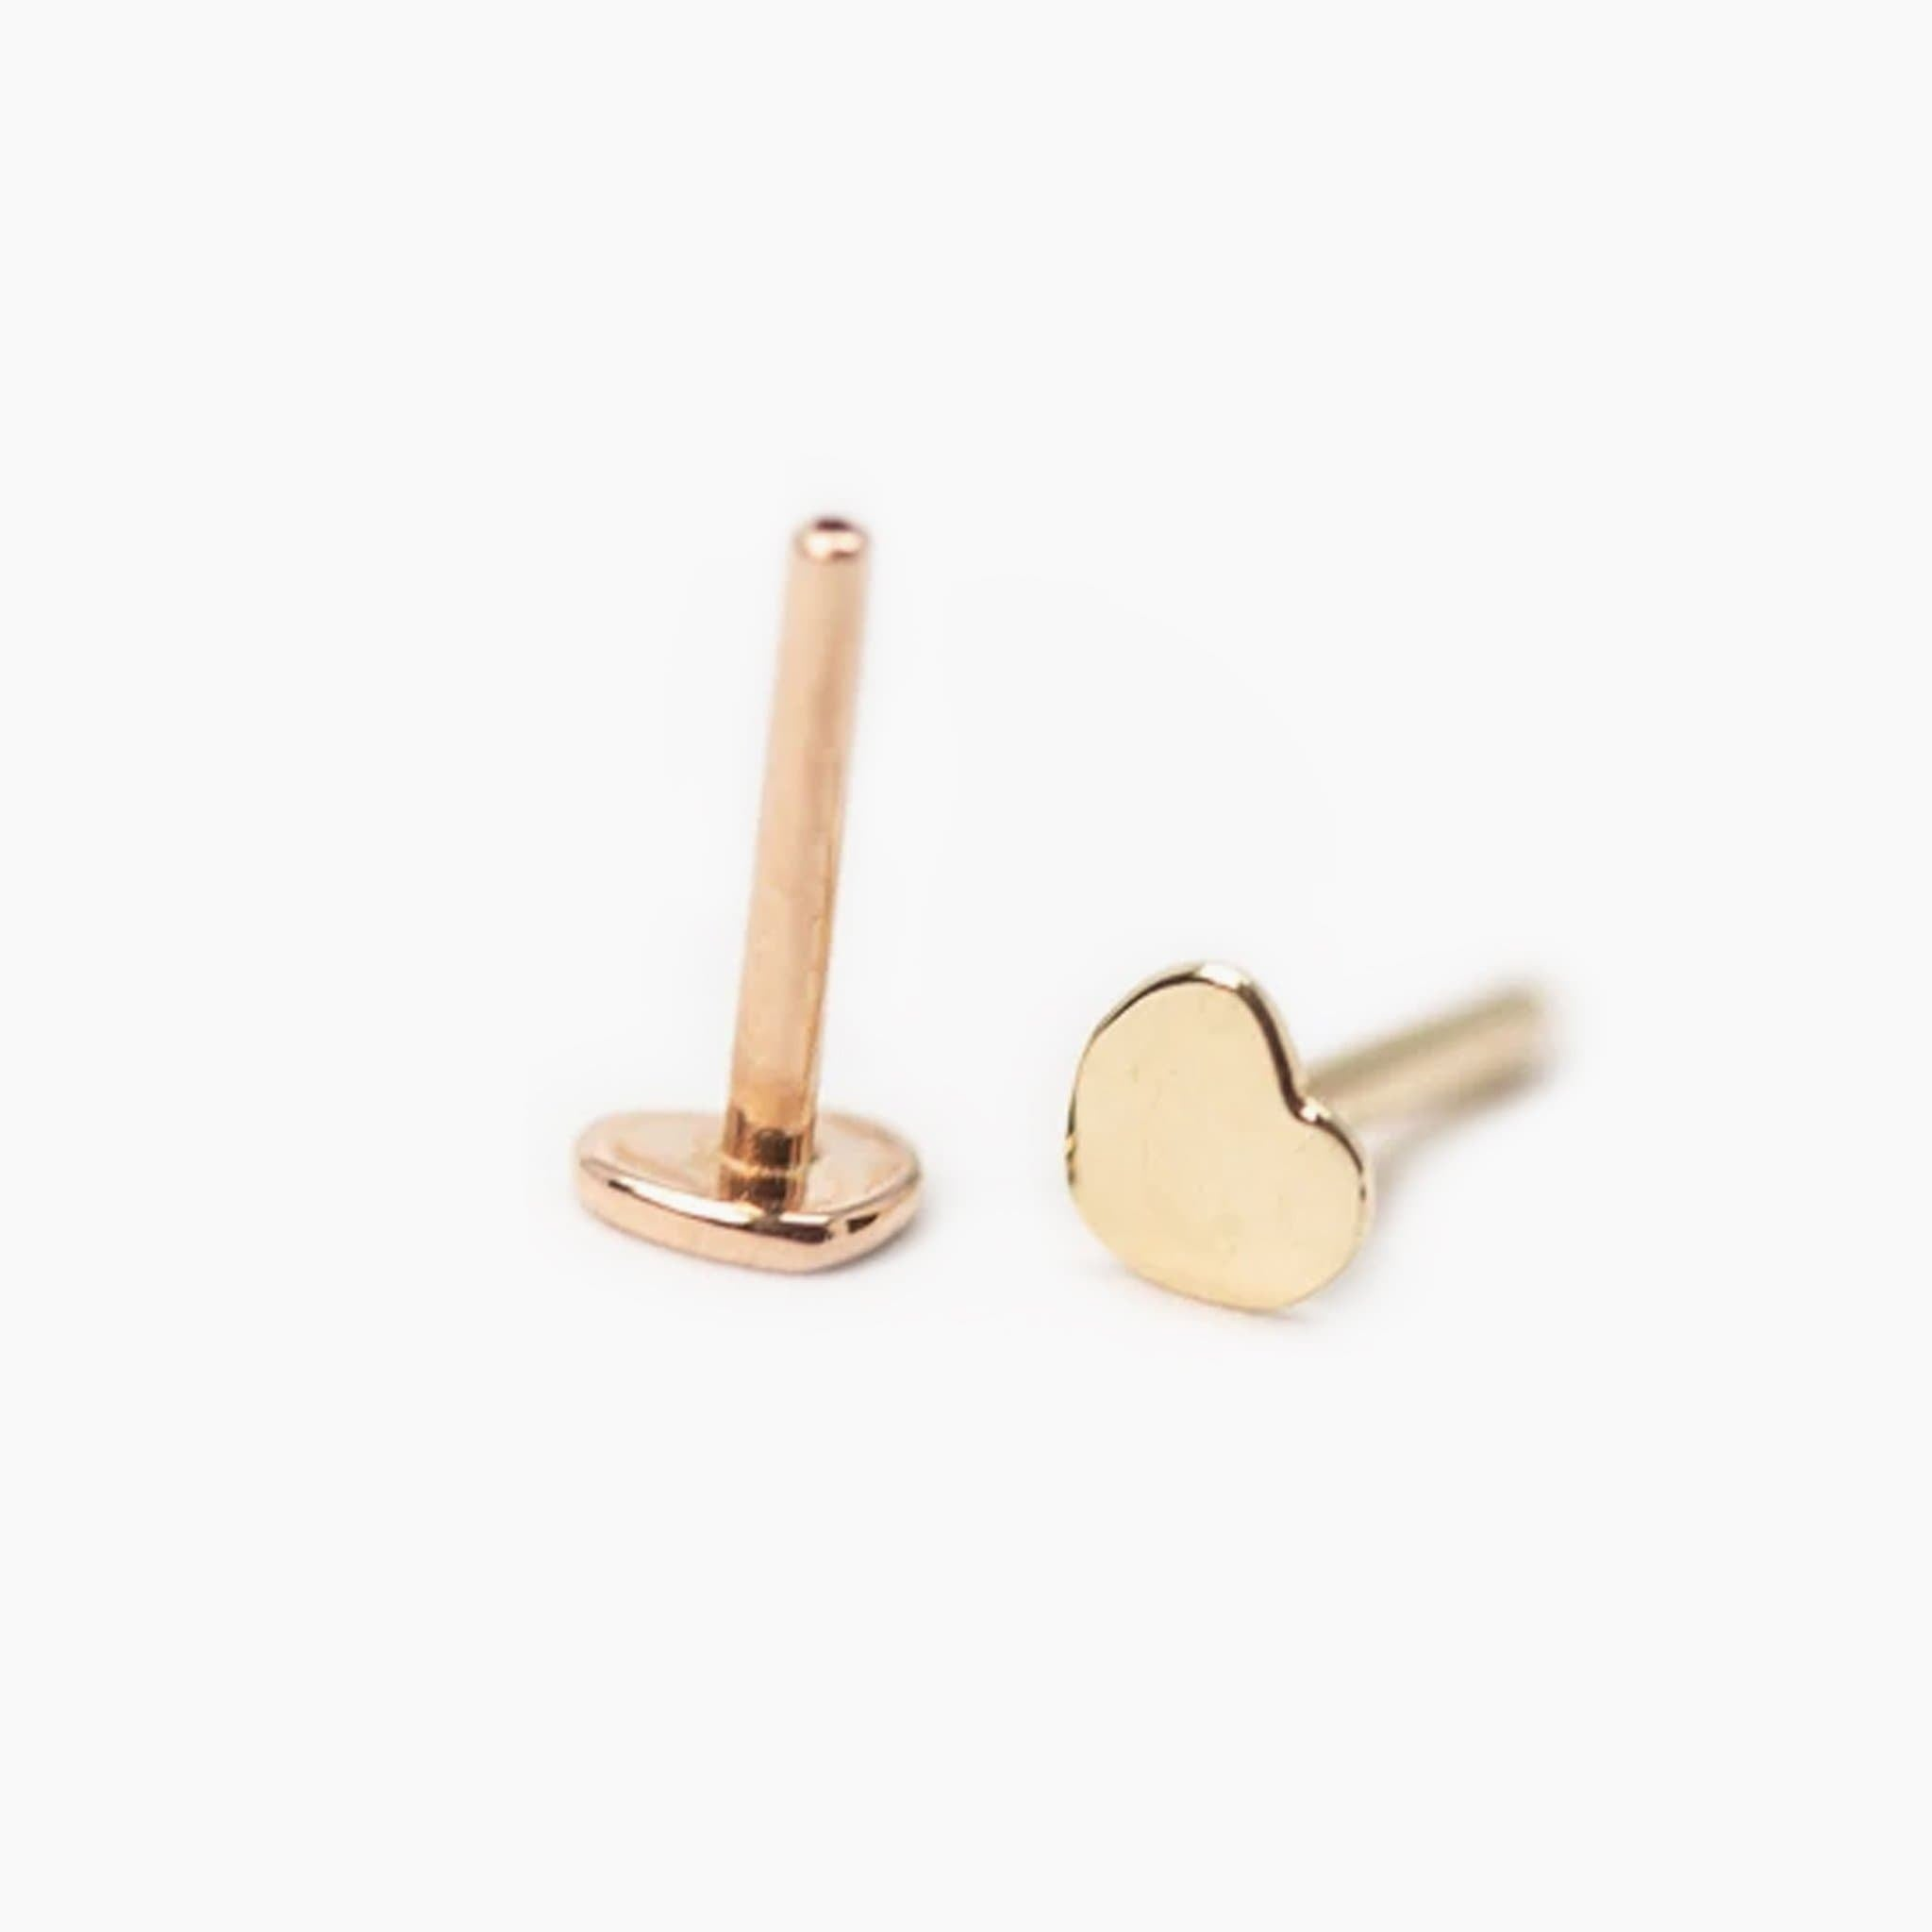 Threadless 14k Gold Heart Shaped Flat-Back Labret Posts